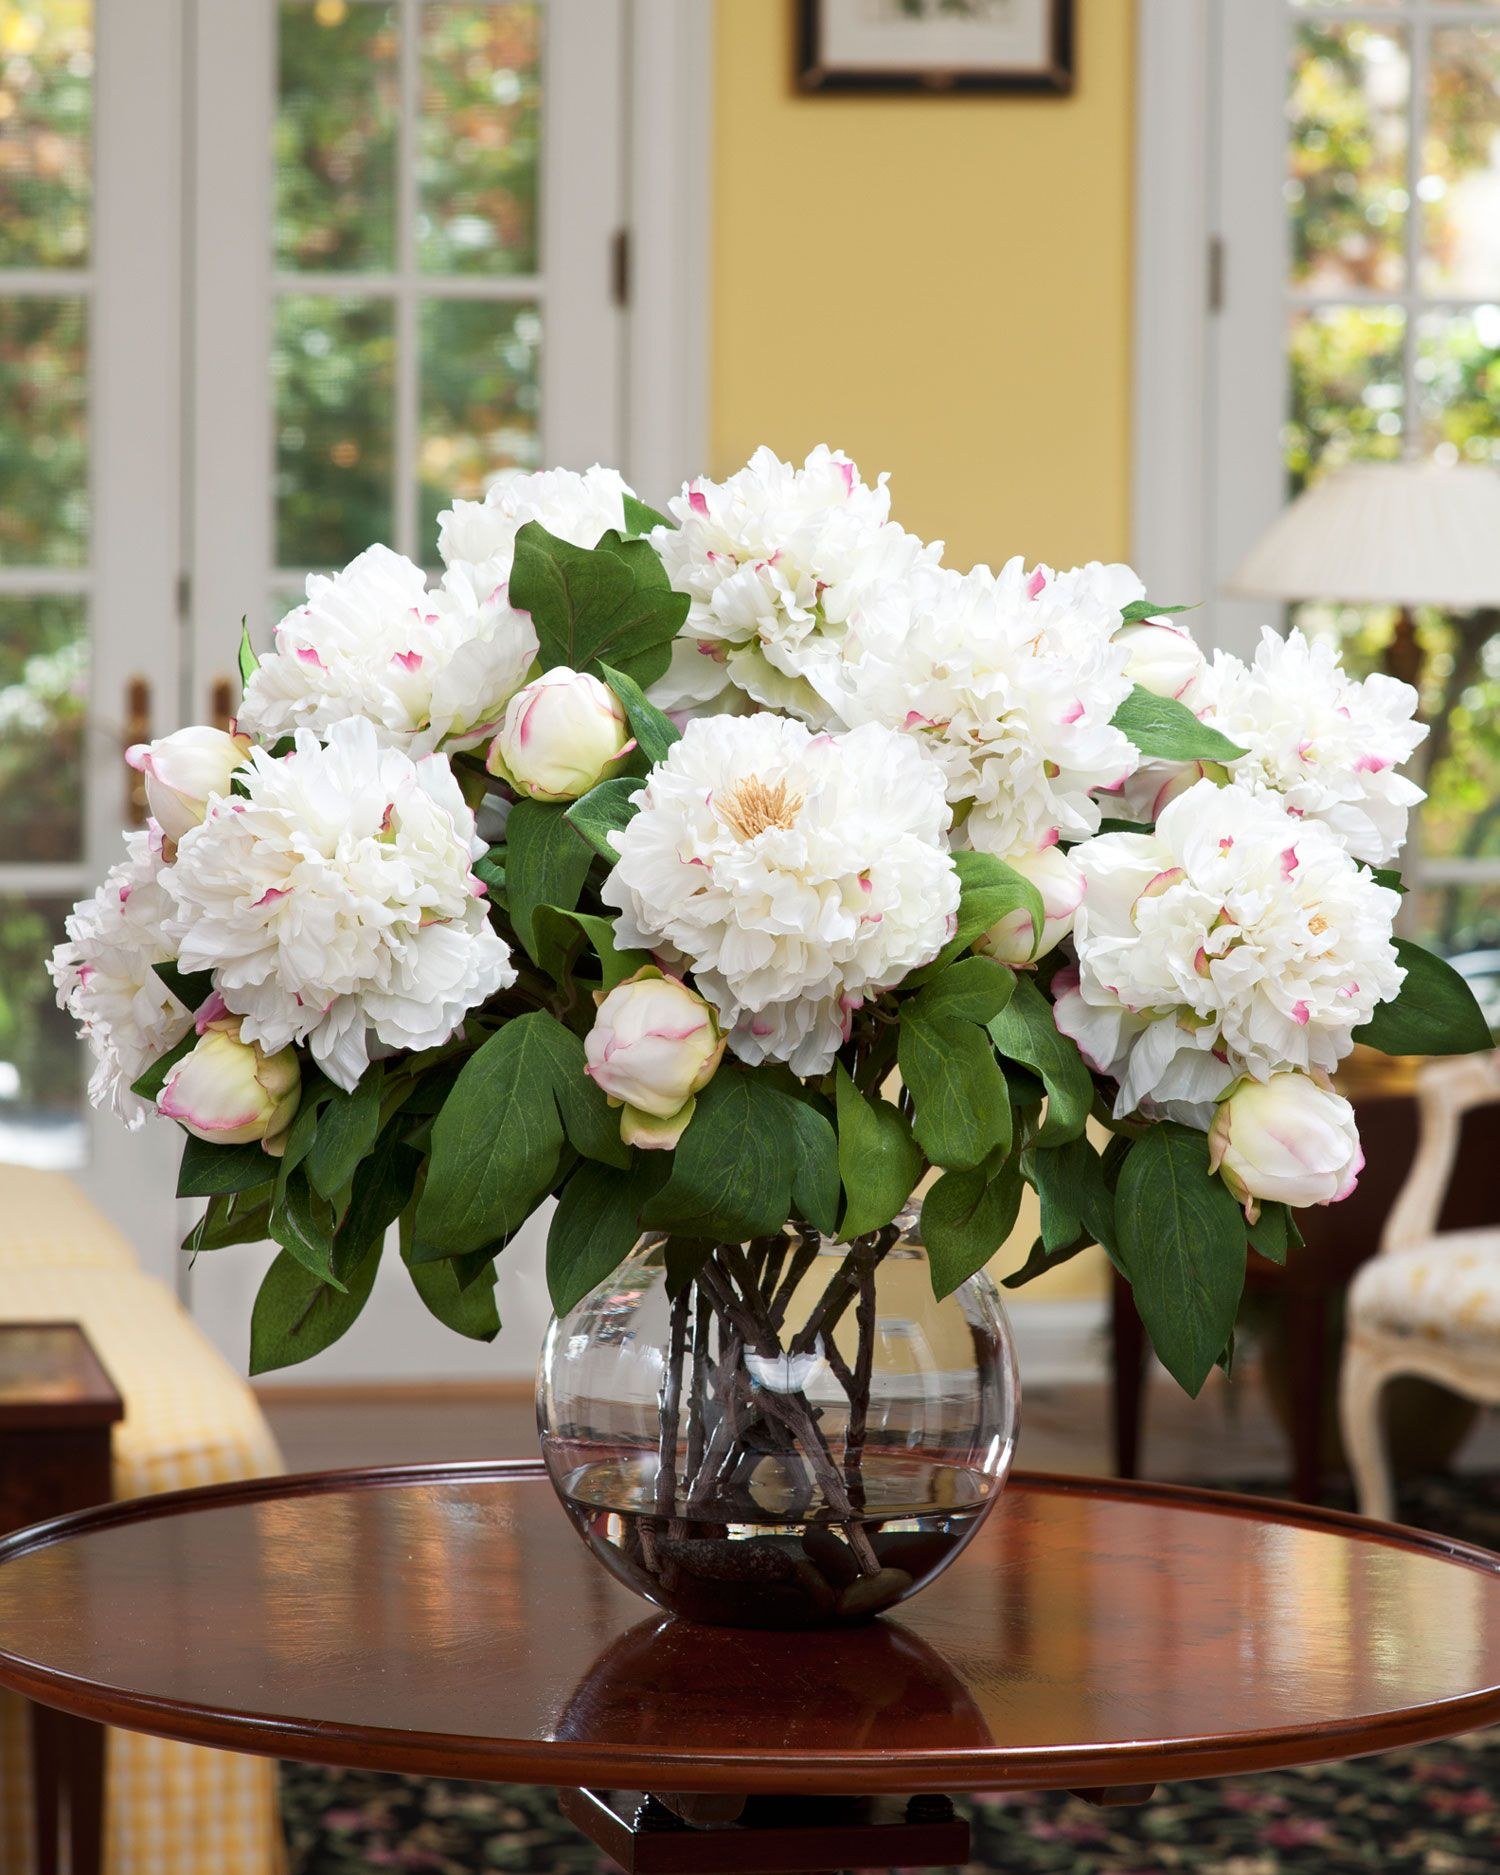 Distinctive Glorious Garden Silk Flower Centerpiece At Petals: White Flower Arrangements, Silk